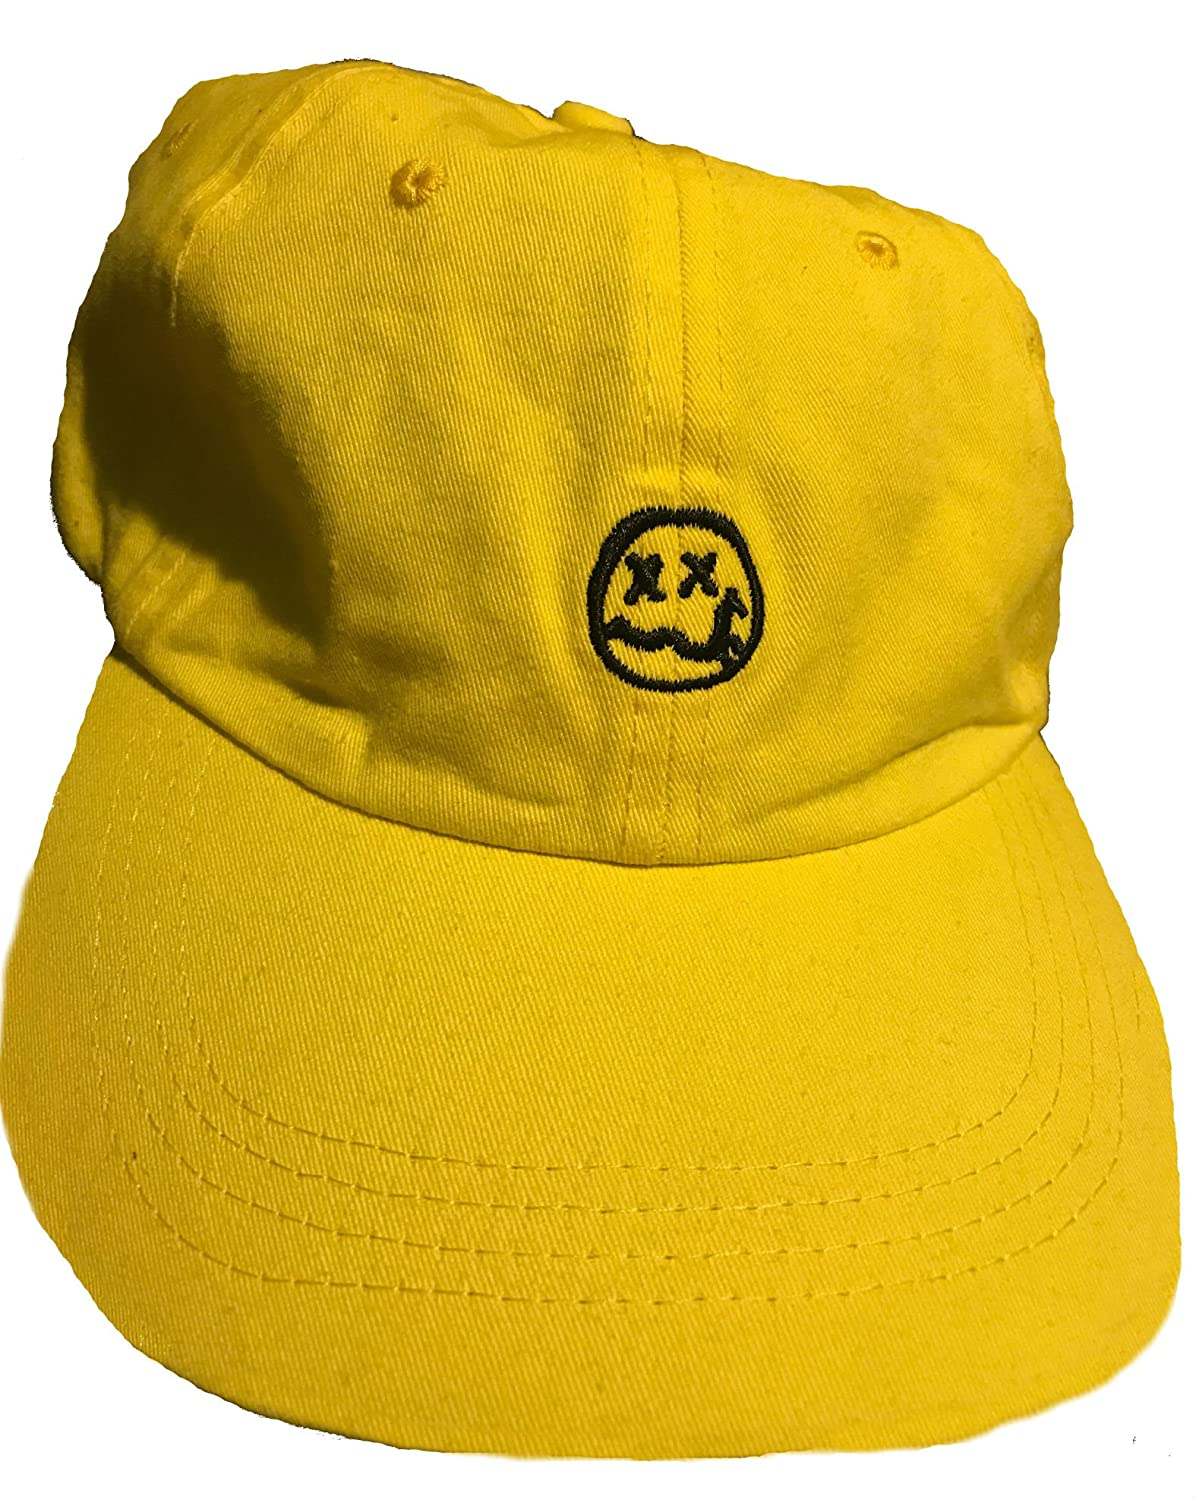 ada7630f7ee Nirvana logo smile smiley face embroidered dad hat baseball cap yellow at  amazon mens clothing store